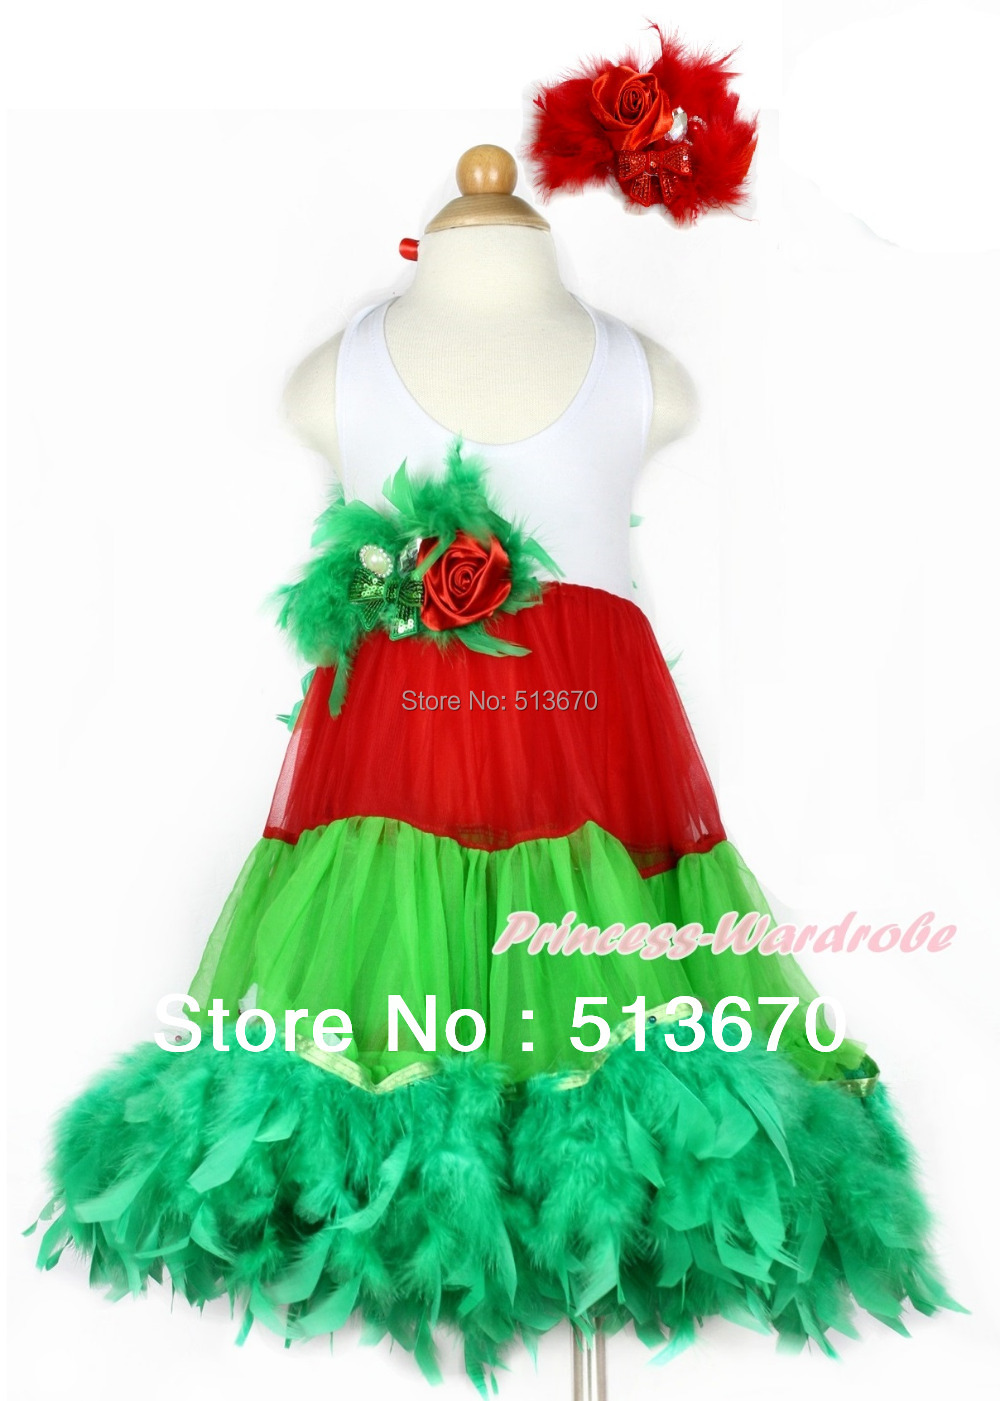 Xmas White Red Green ONE-PIECE Petti Dress Kelly Green Posh Feather Red Feather Rose Bow With Accessory 2PC Set MALP29 -1 nike гетры nike classic ii sock 394386 670